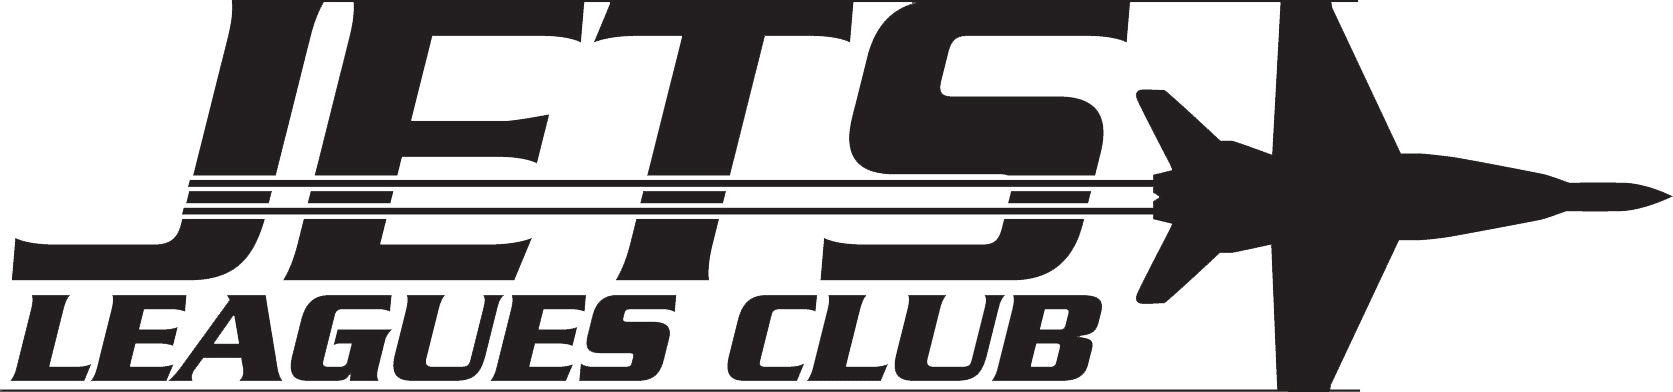 Jets Leagues Club Logo